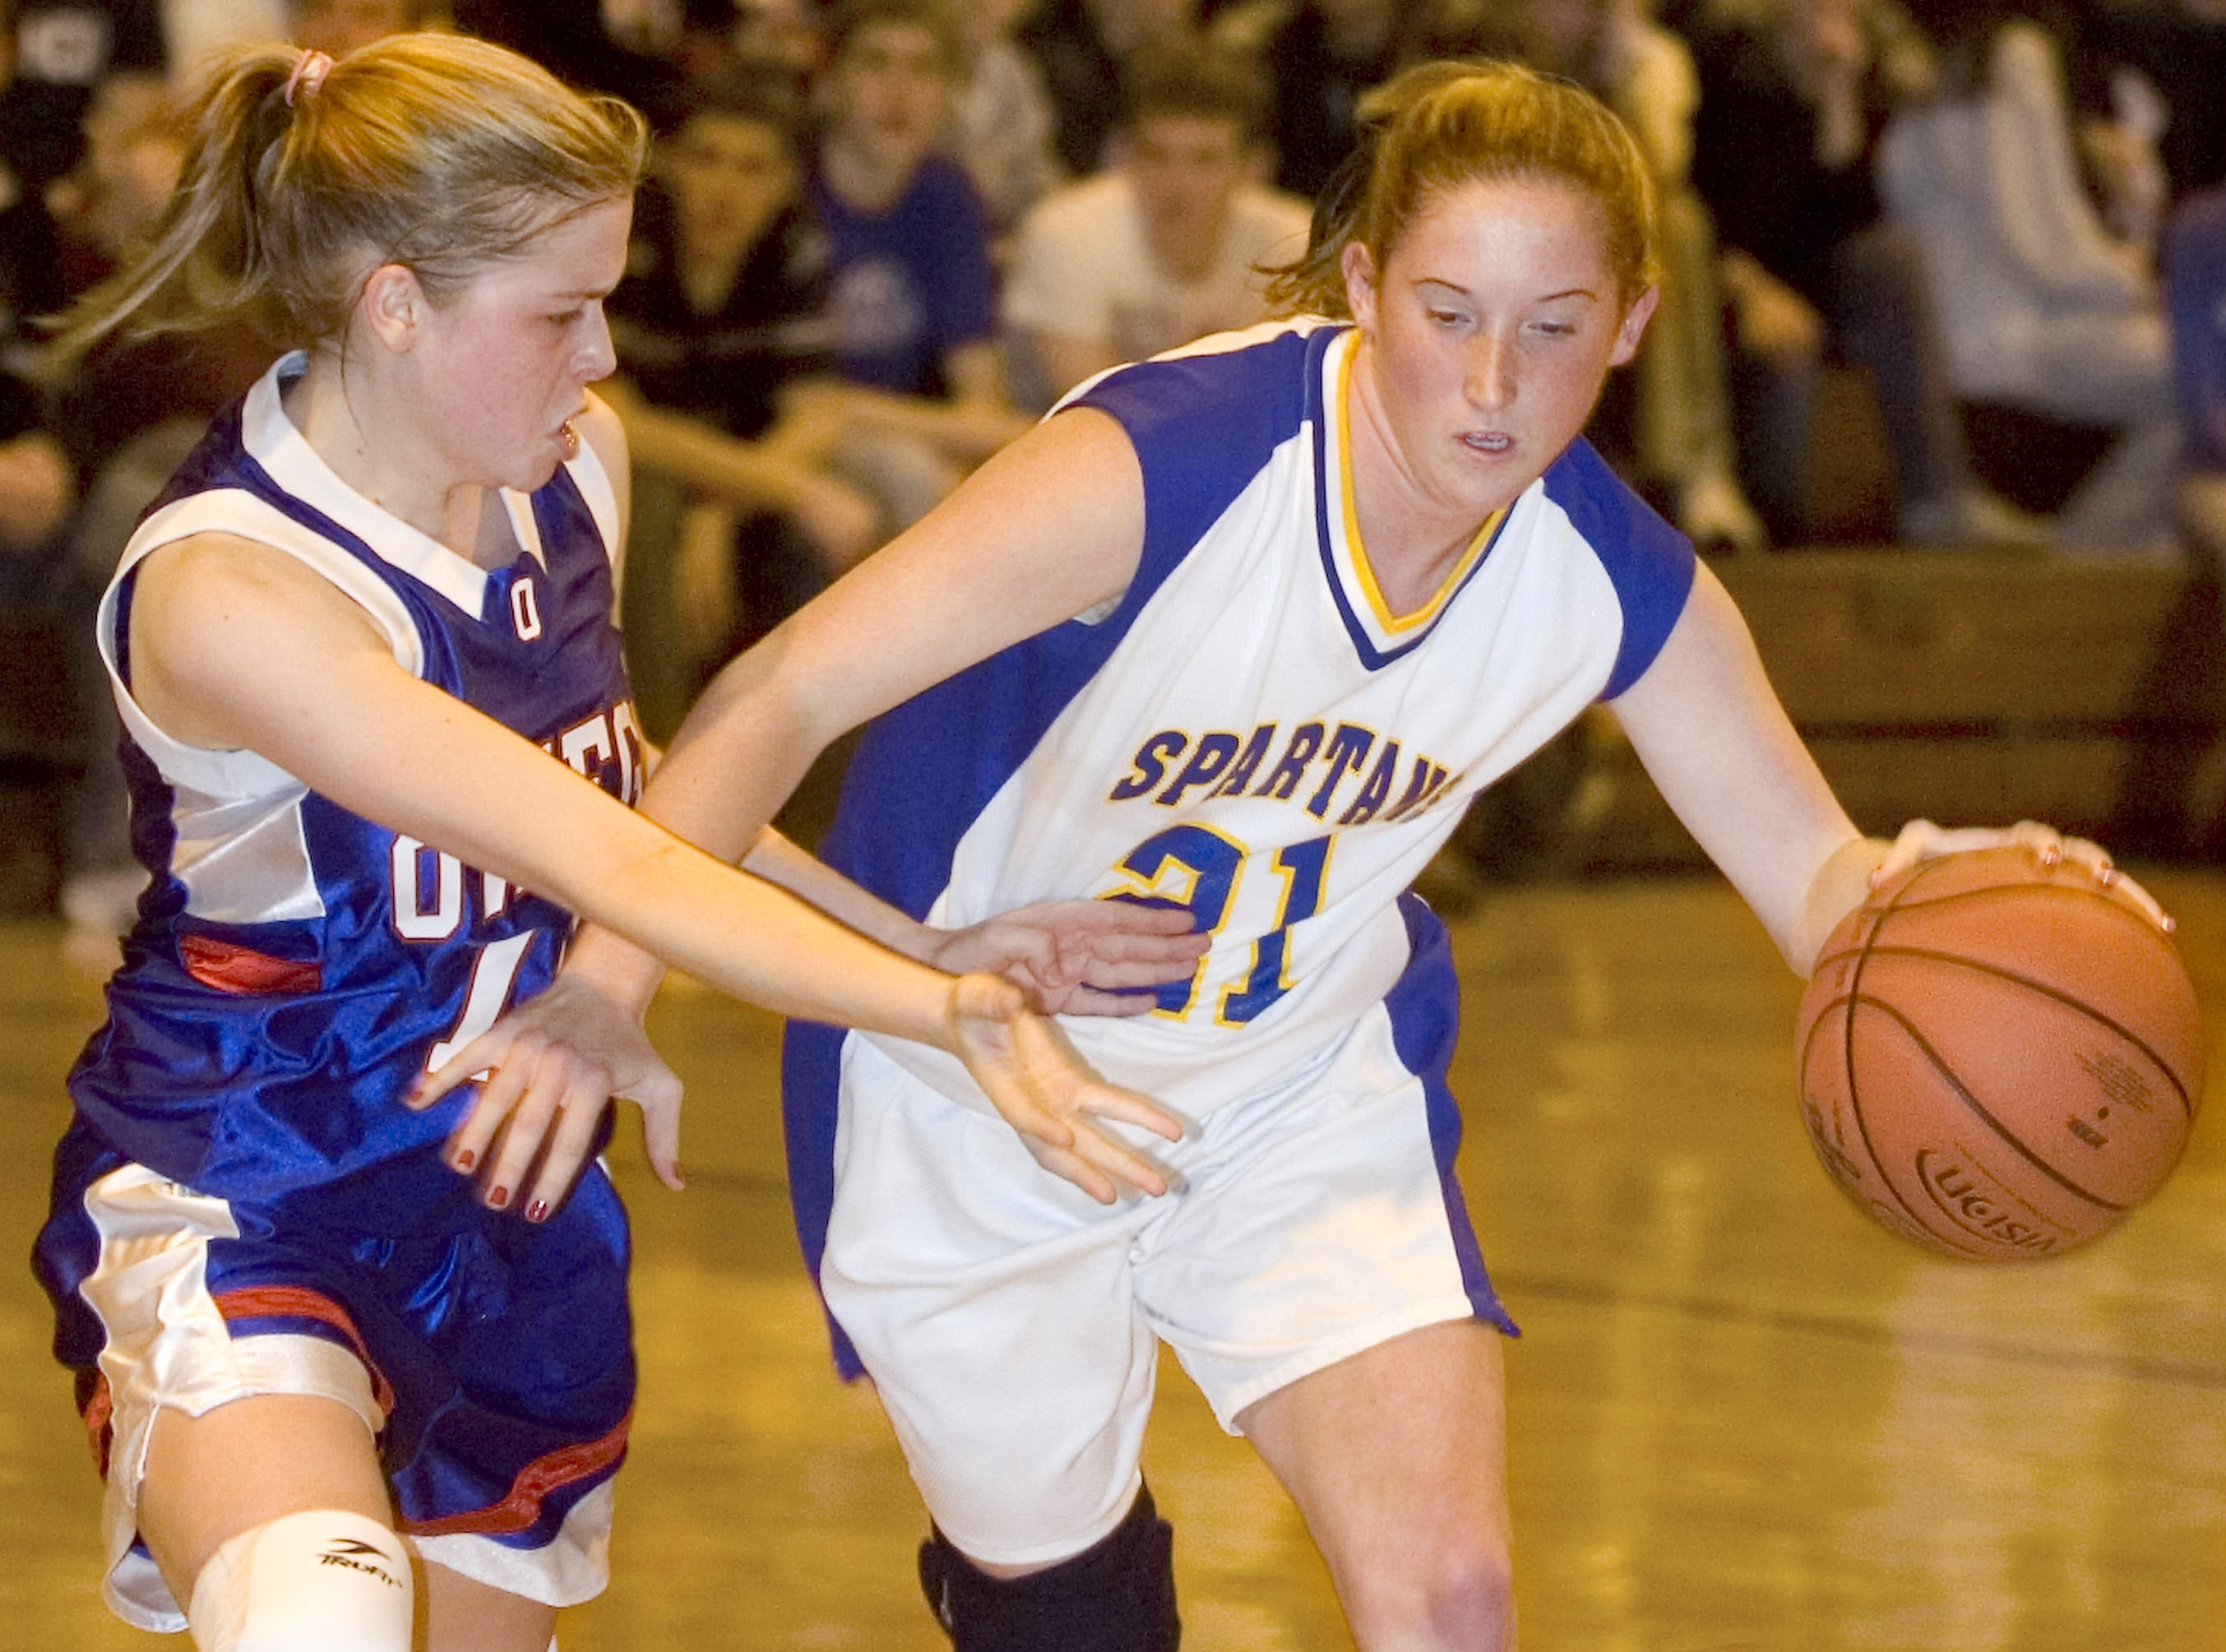 2005: Maine-Endwell High School's Katlin Bushnell, right, works past Owego Free Academy's Alanna Cerretani in the first half of the Wednesday game at Maine-Endwell High School.